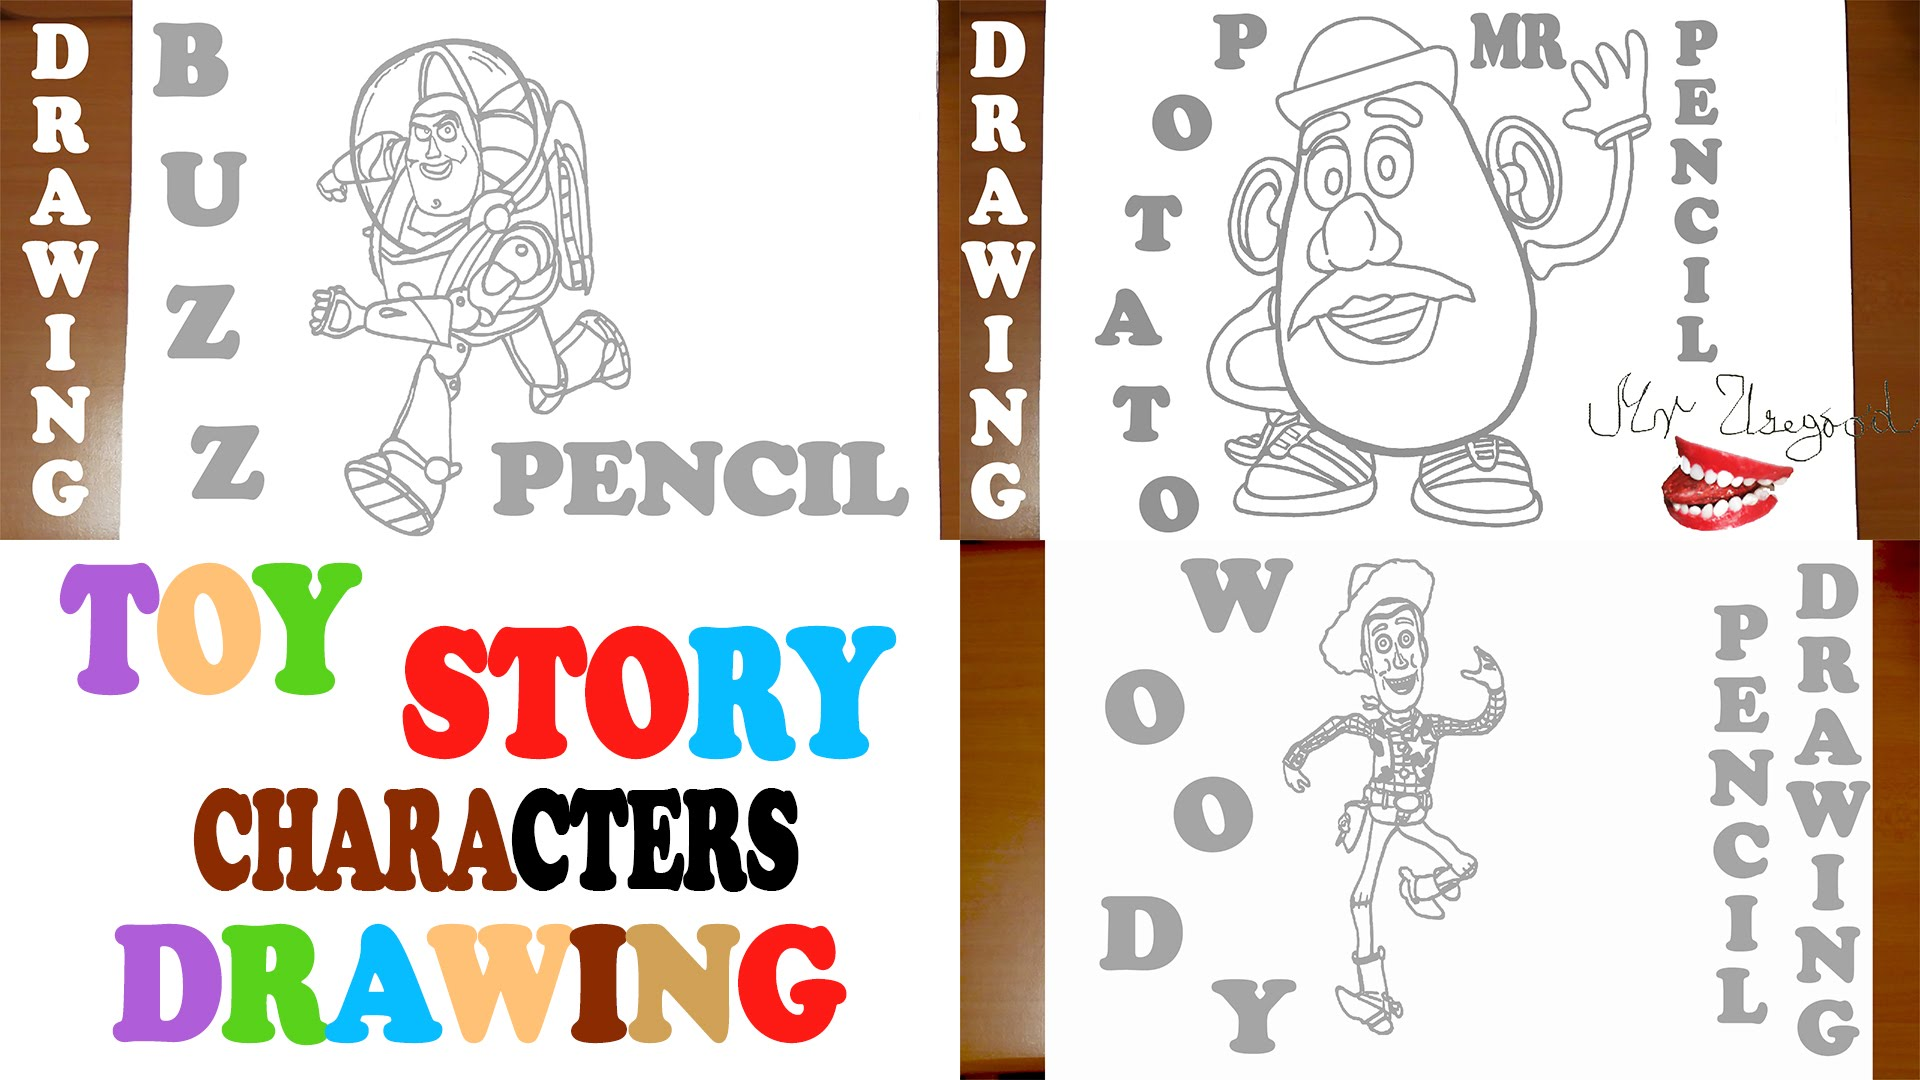 1920x1080 How To Draw Toy Story Characters Woody, Buzz, Mr Potato Head